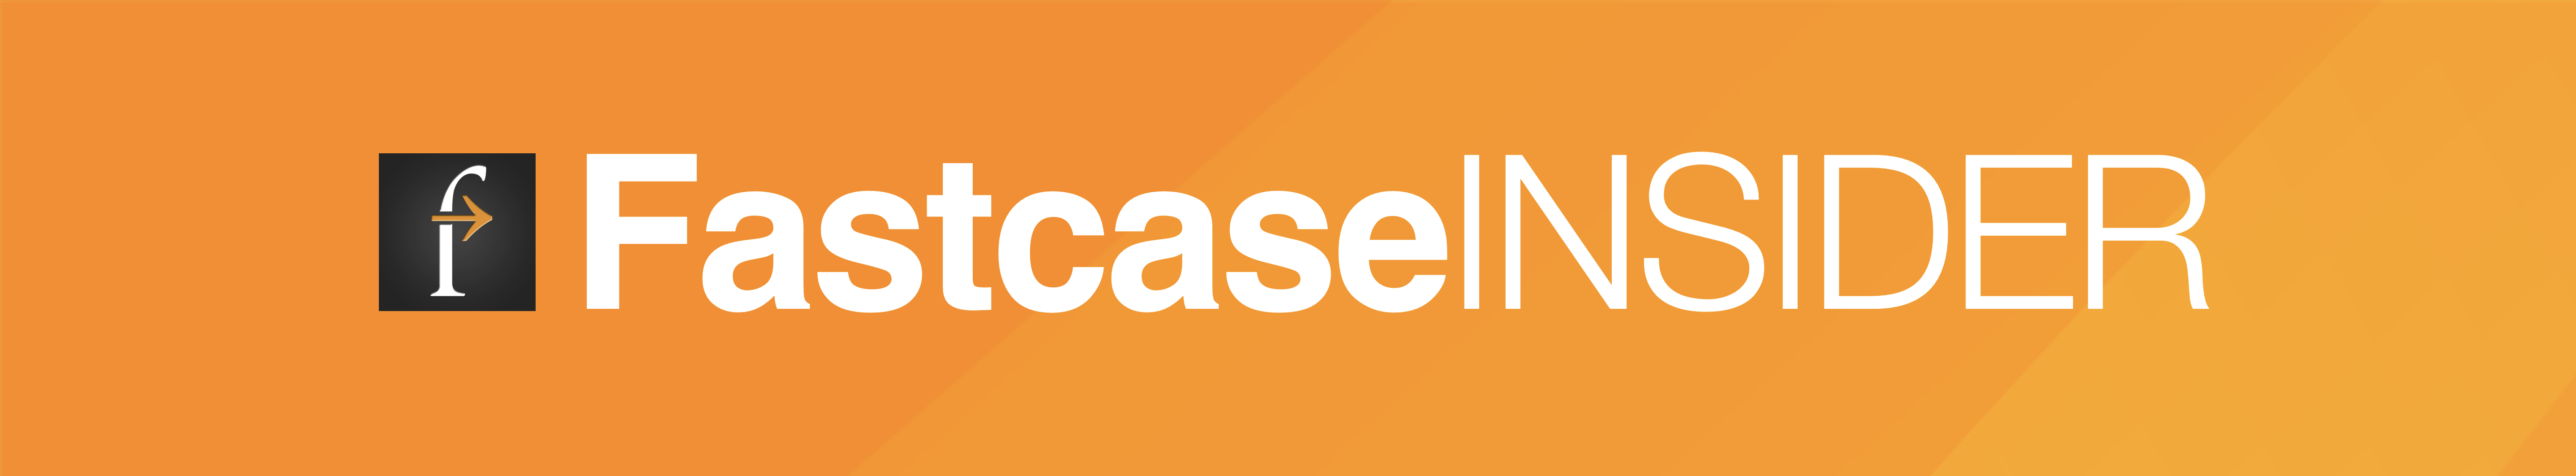 Fastcase Insider - February 2020 Newsletter